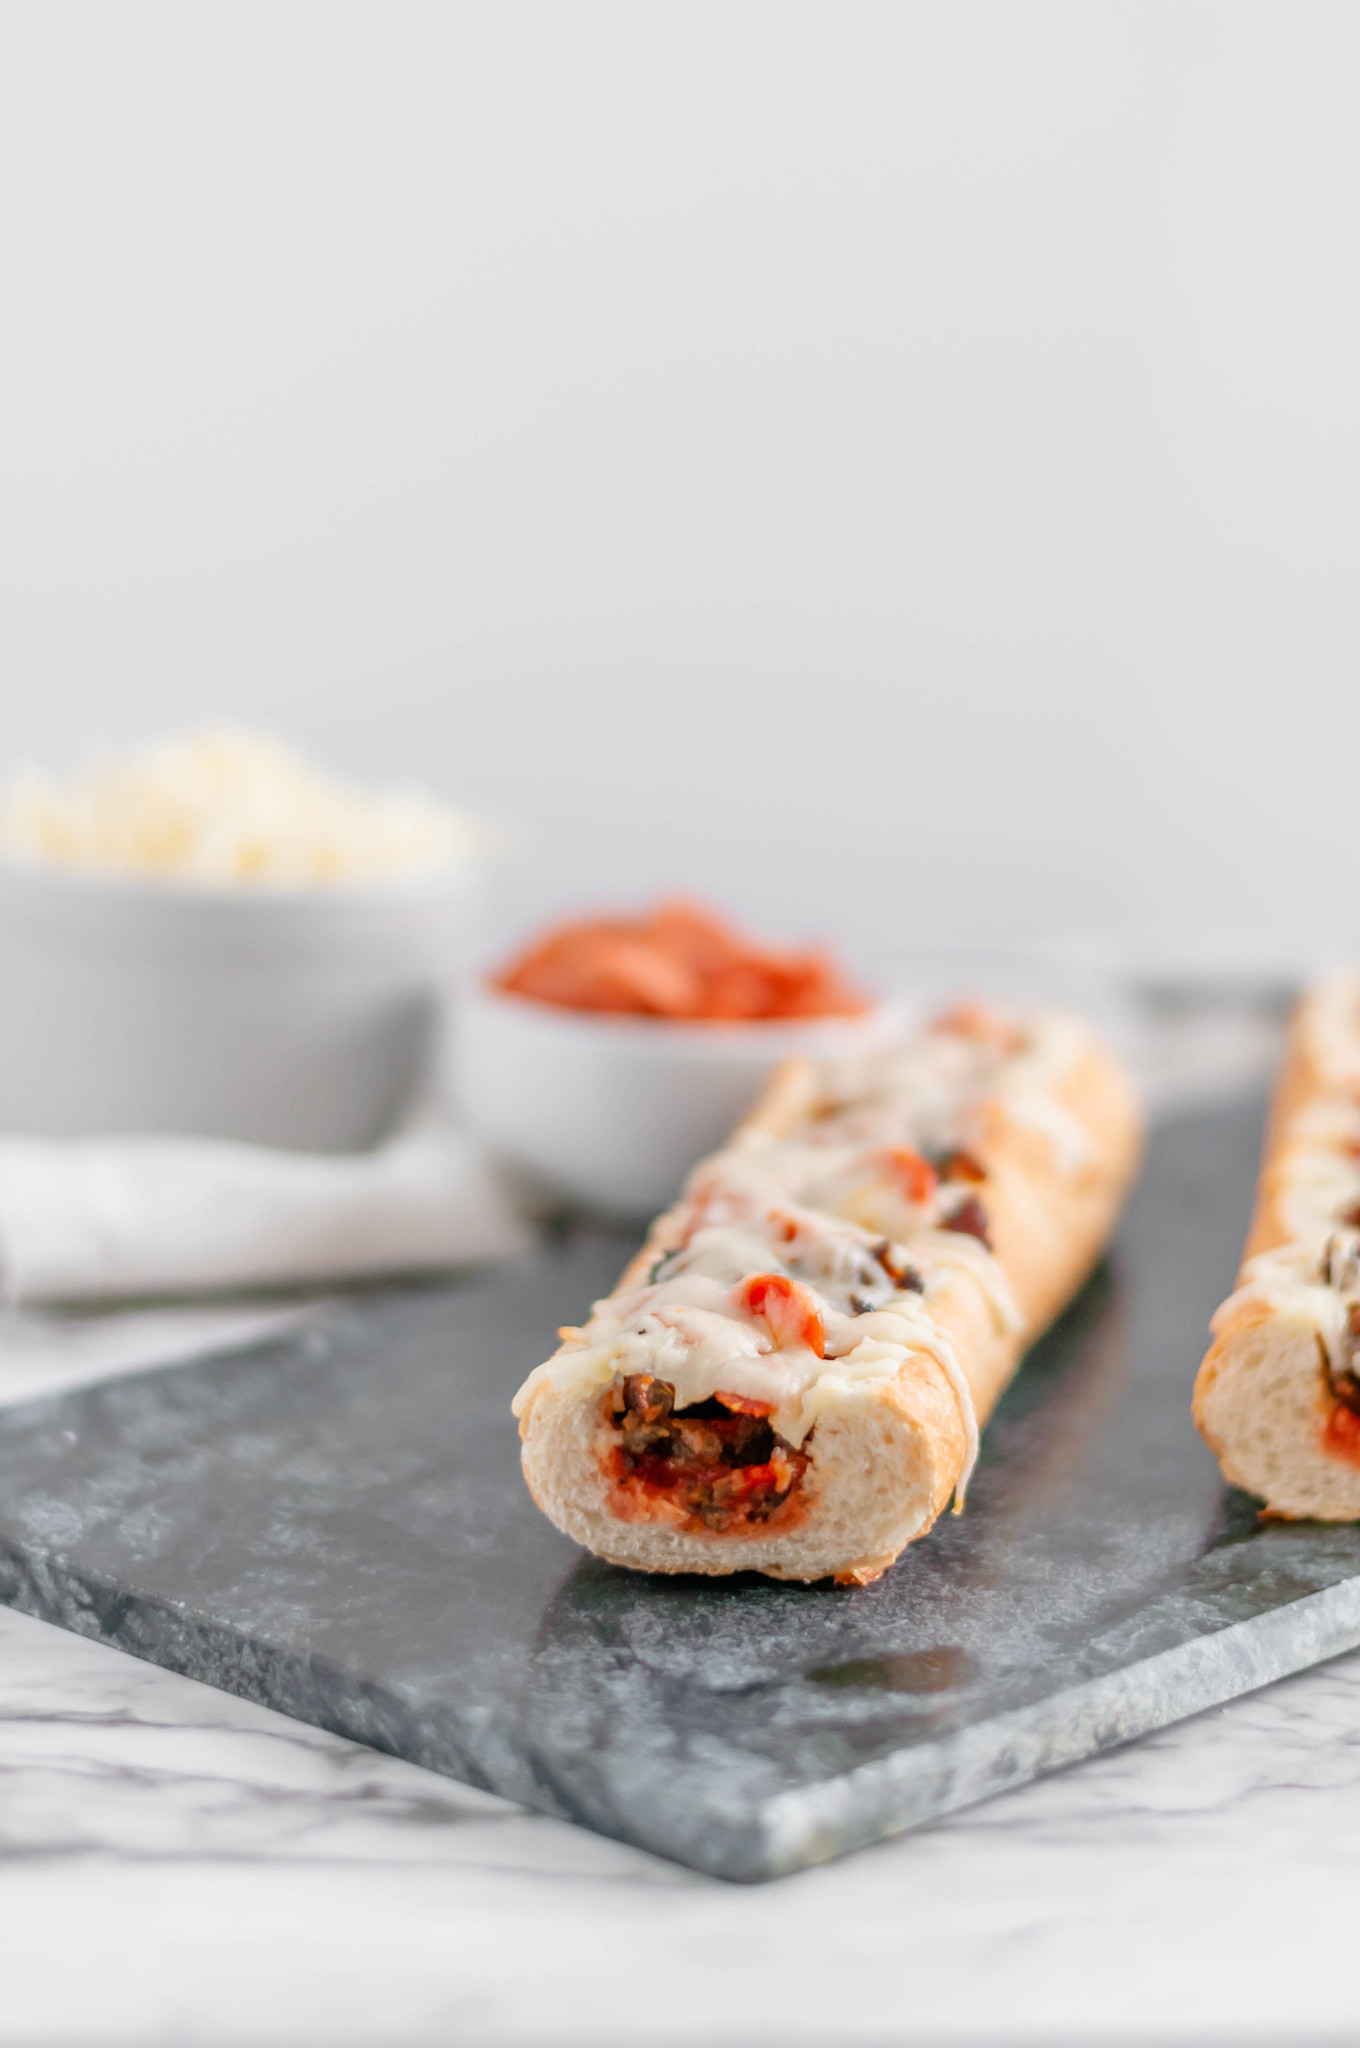 These French Bread Pizza Bites are a great option for the Super Bowl this year. French baguette is hollowed out & stuffed with your favorite pizza toppings.